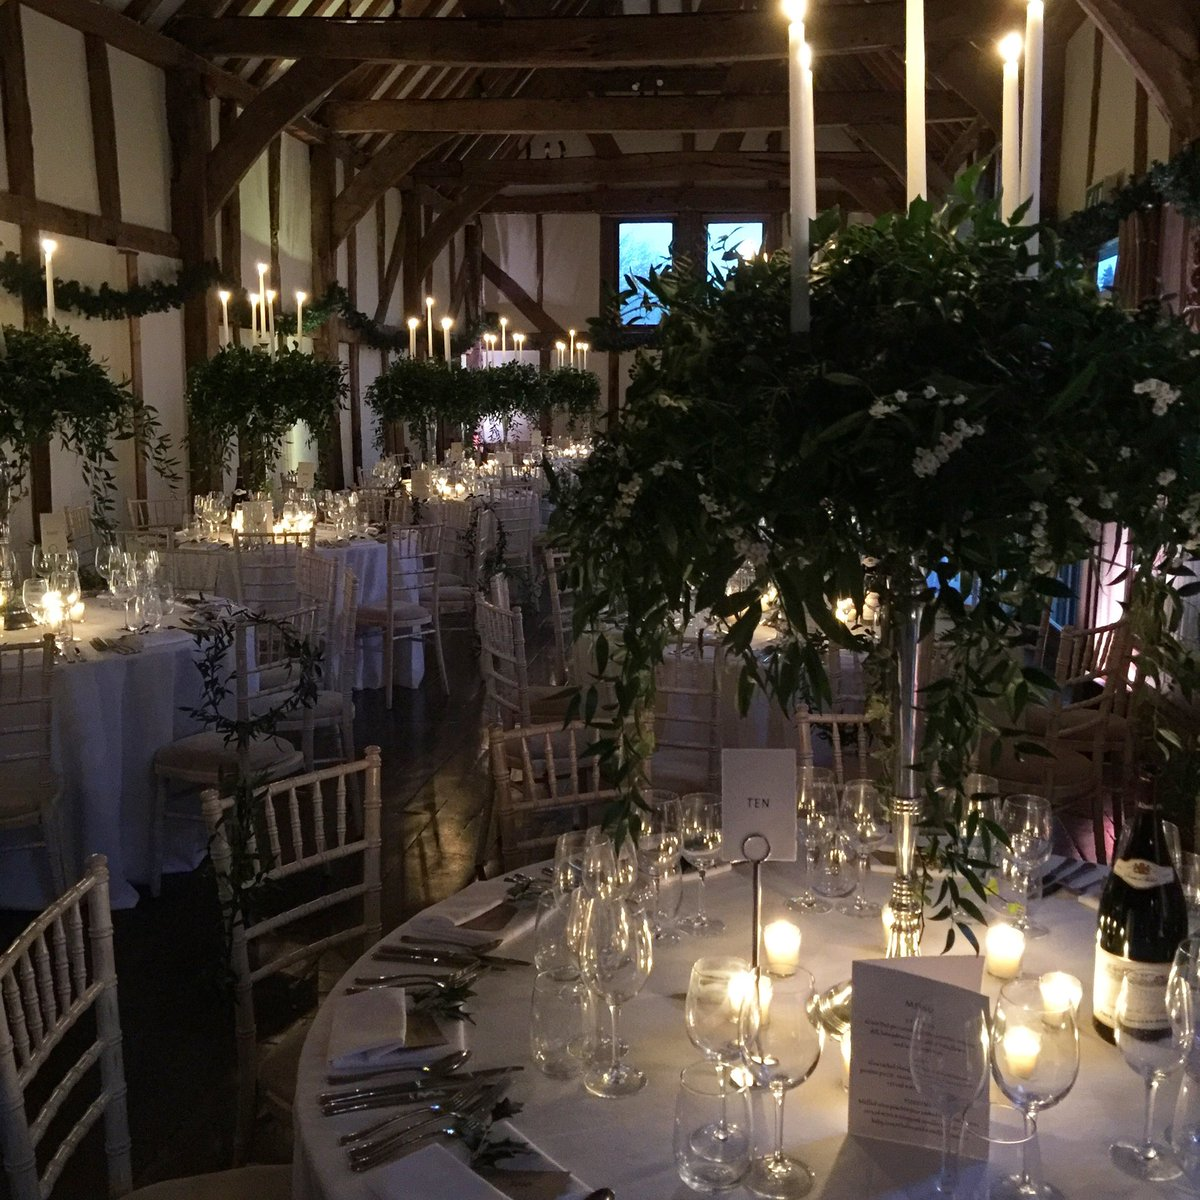 Don't you just love this romantic candle light for a #Christmas #wedding? #loseleypark @Loseleyevents @stressfreehire #thegorgeousflowercompany #barn